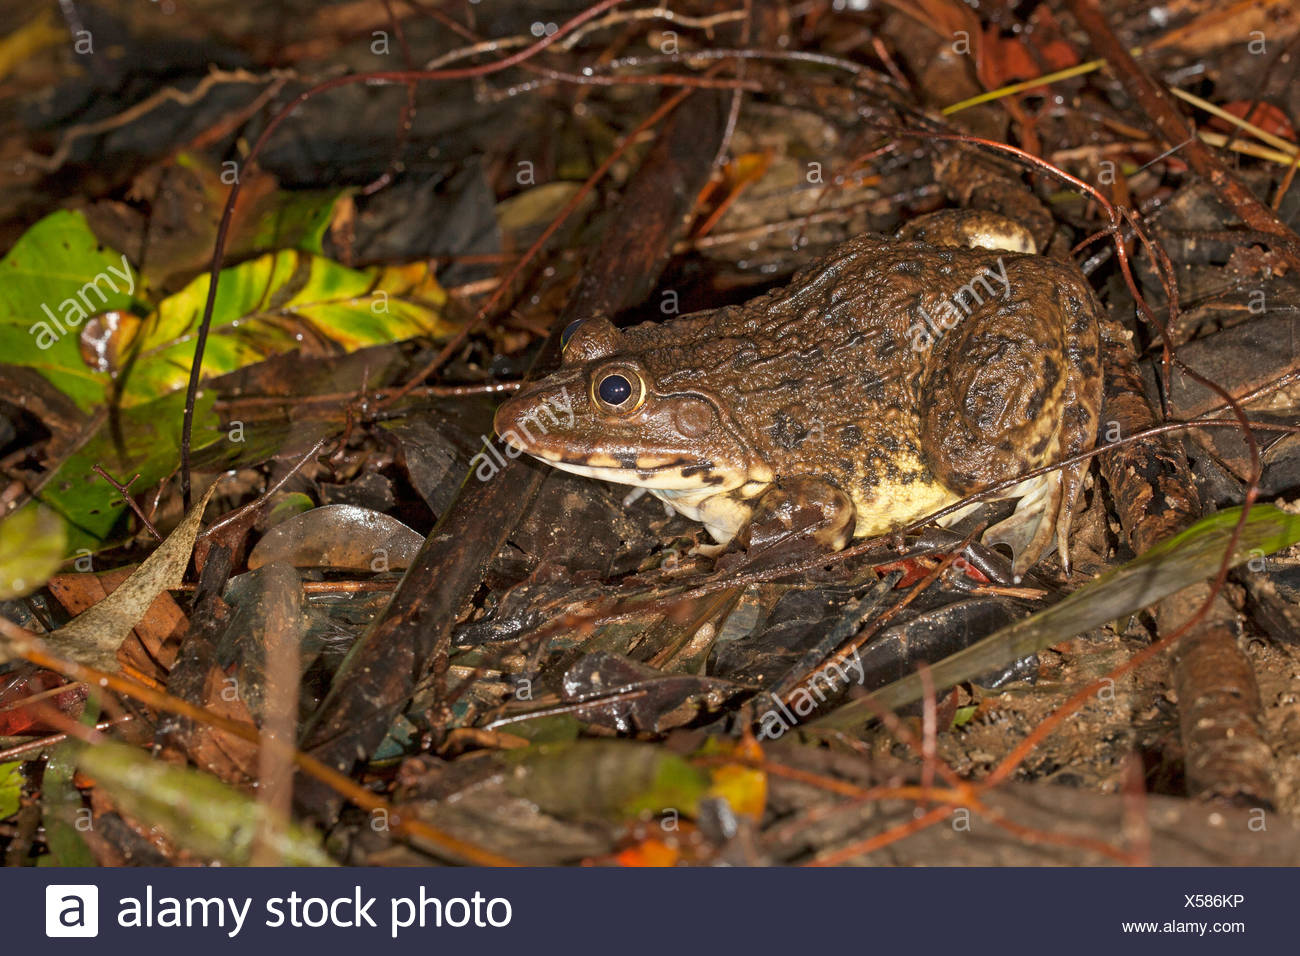 chinese edible frog on the shore of a pond - Stock Image